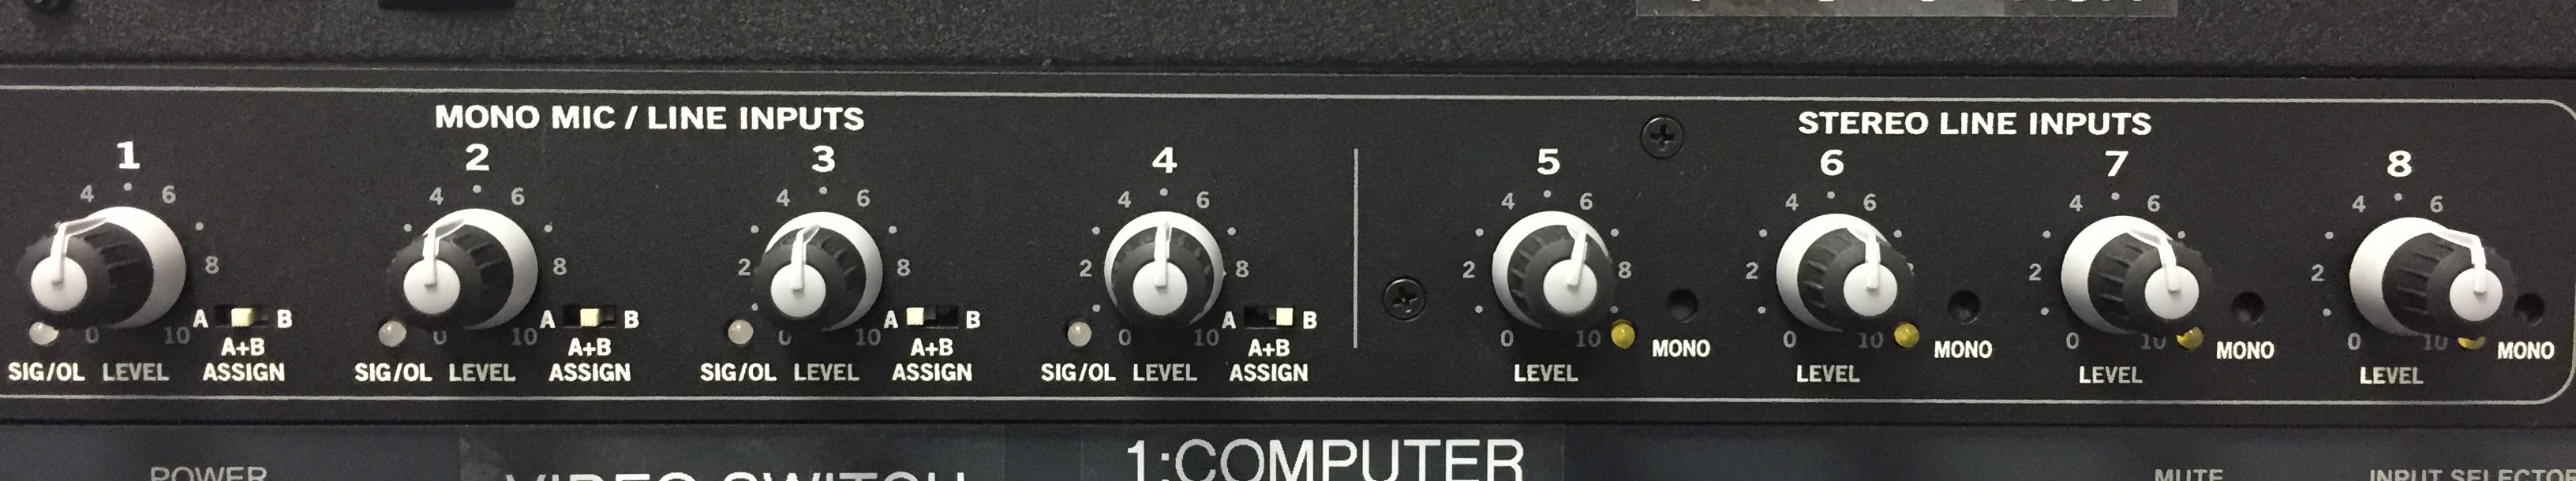 VEL_Volume_Knobs.jpg